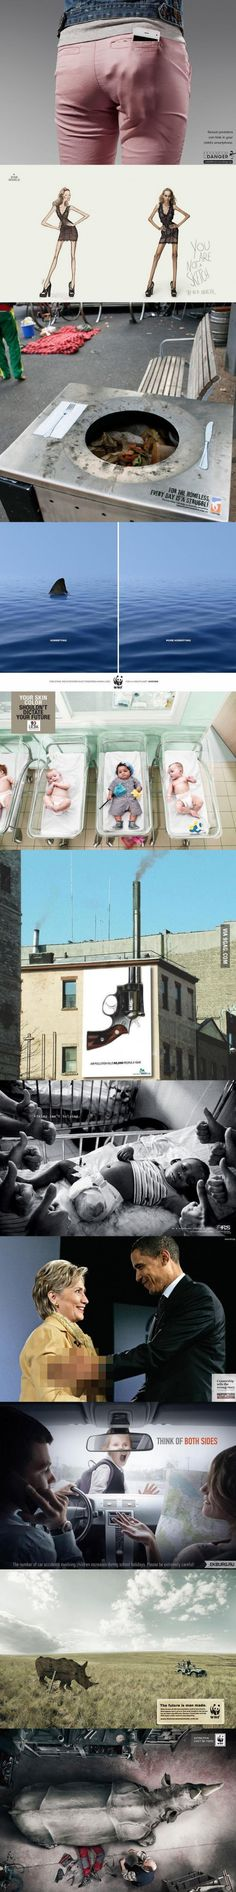 11 Brilliant Advertisements.